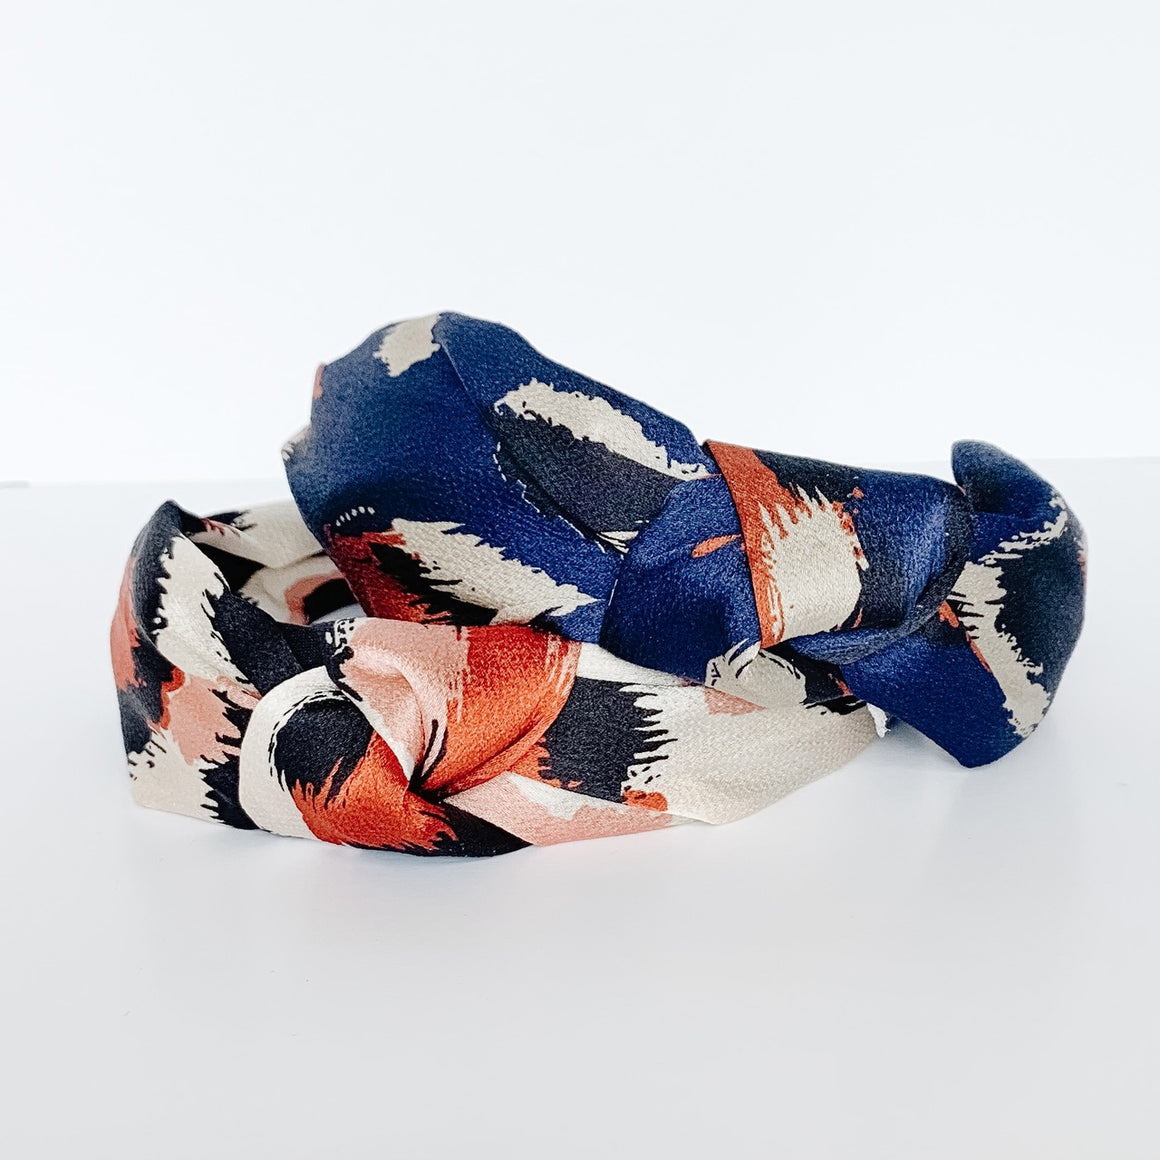 Abstract Print Knotted Headband-Accessories-Max & Riley-Max & Riley